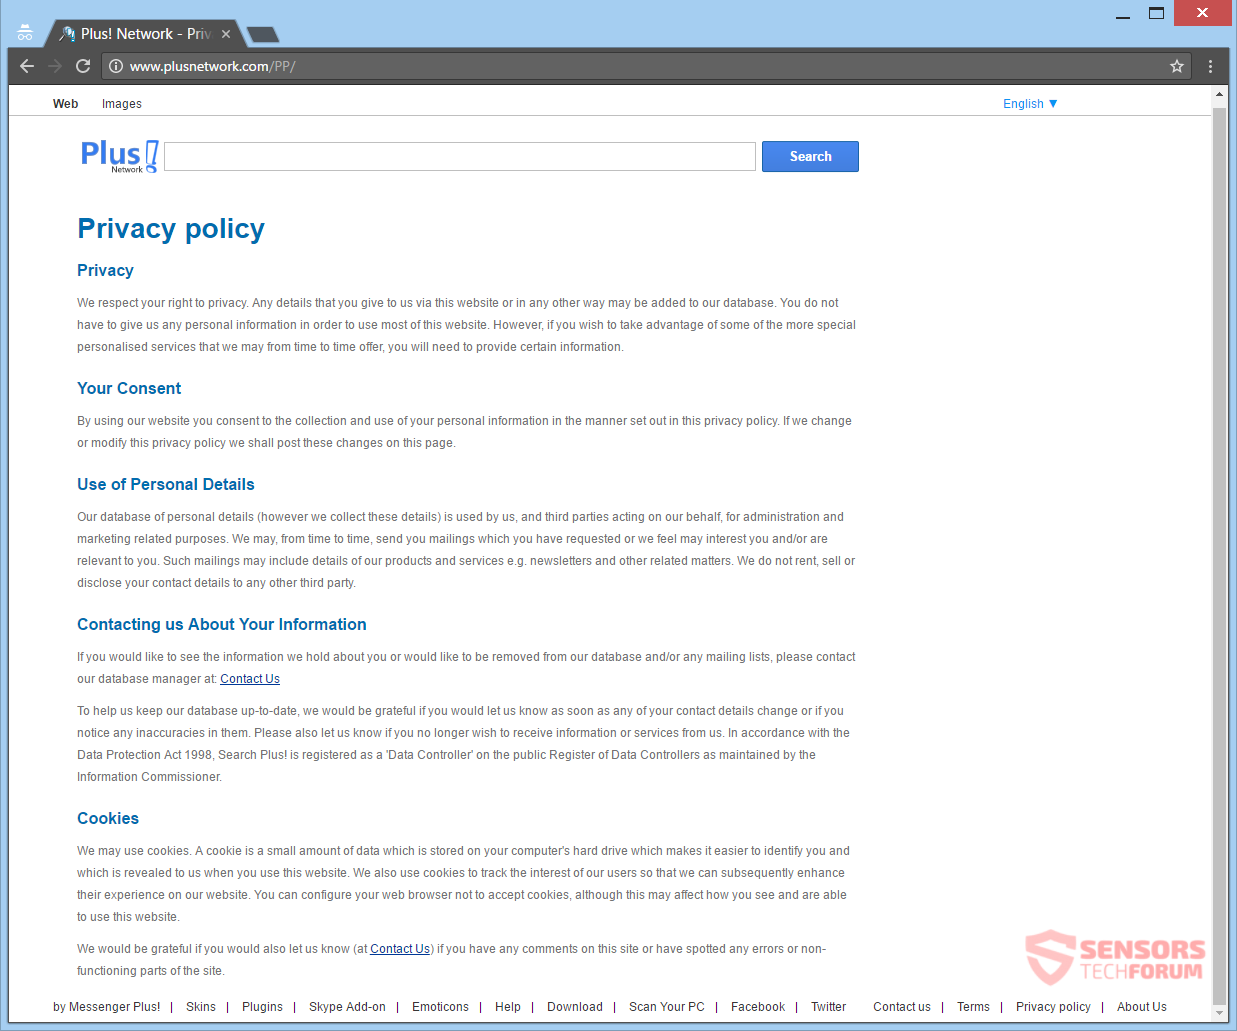 stf-loadstart-net-load-start-browser-hijacker-redirect-plus-network-privacy-policy